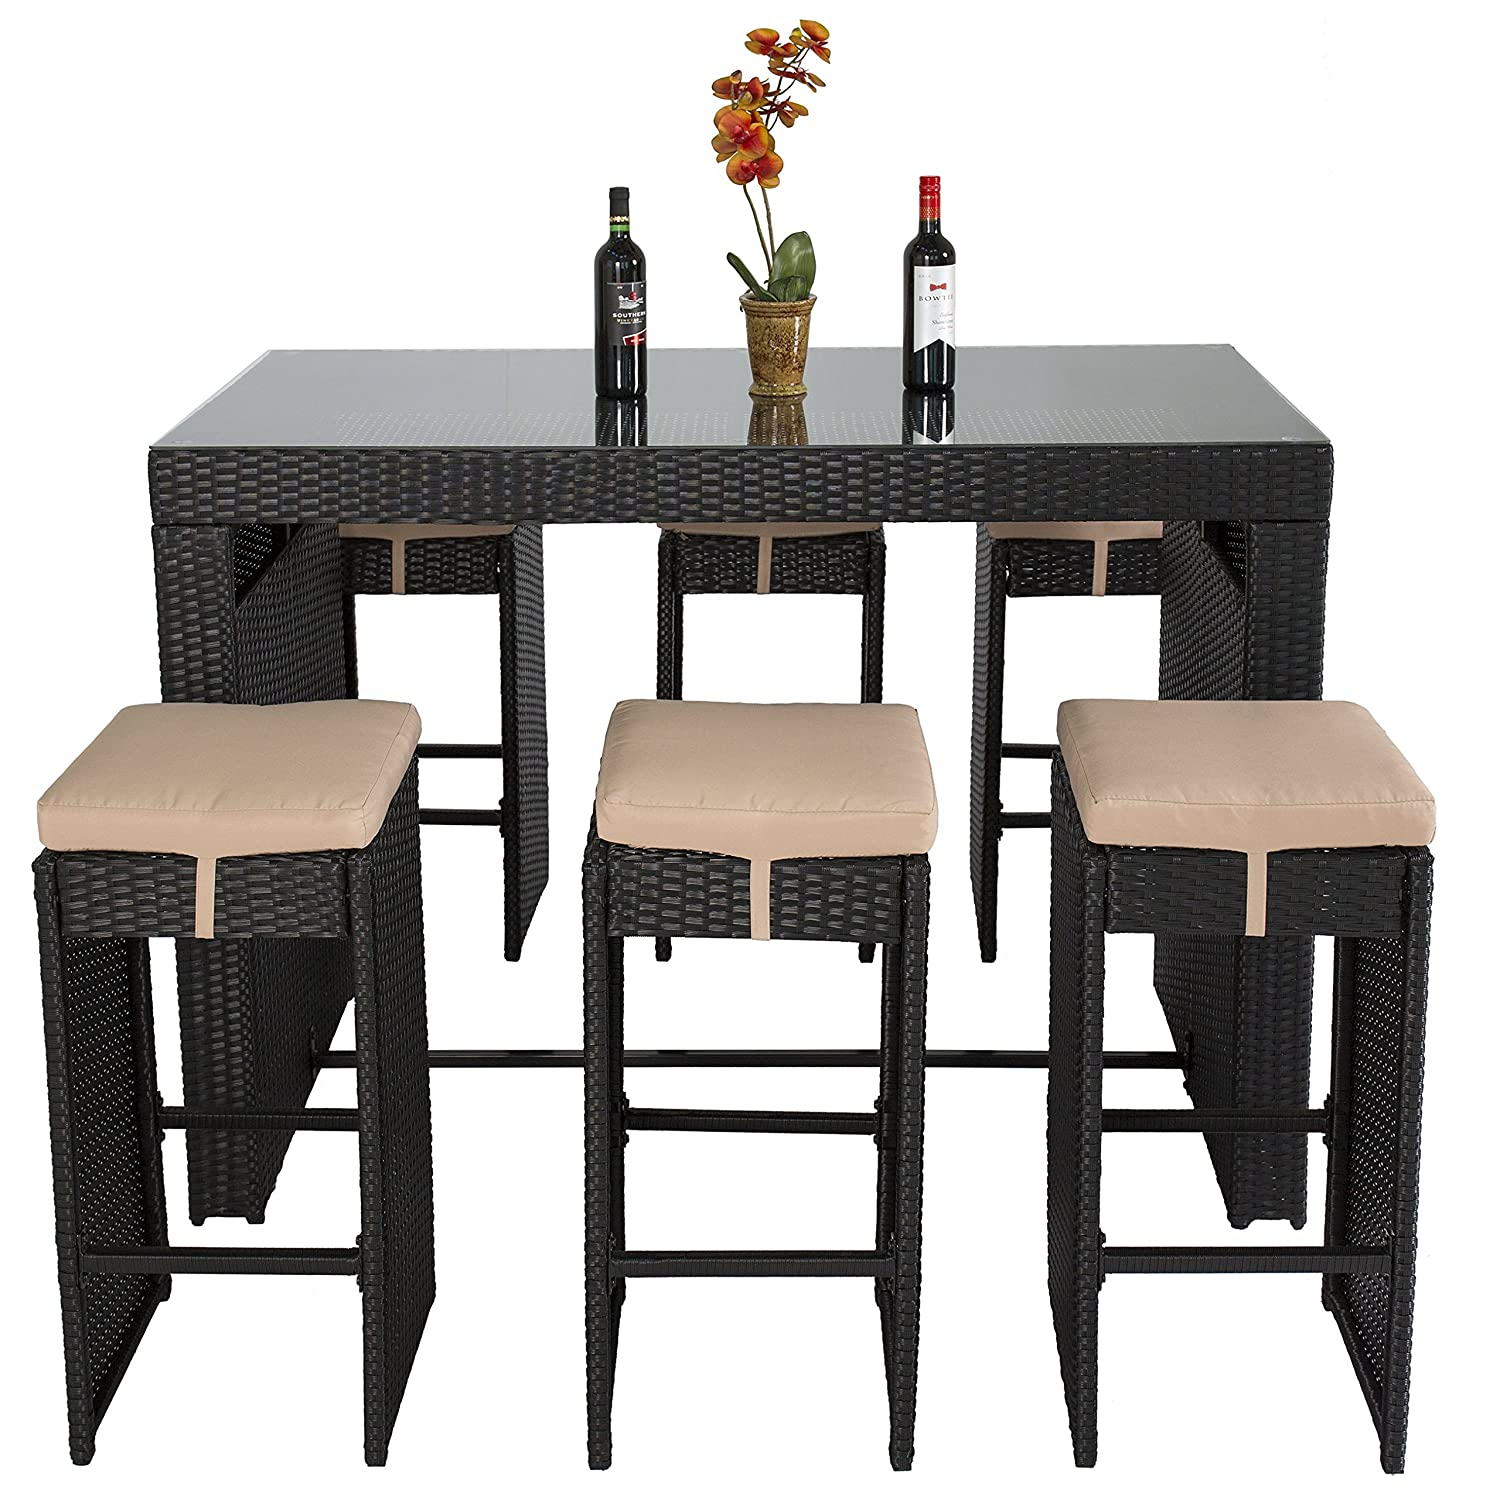 Amazon Best Choice Products 7pc Rattan Wicker Barstool Dining Table Set Bar Stool Black Patio Lawn Garden